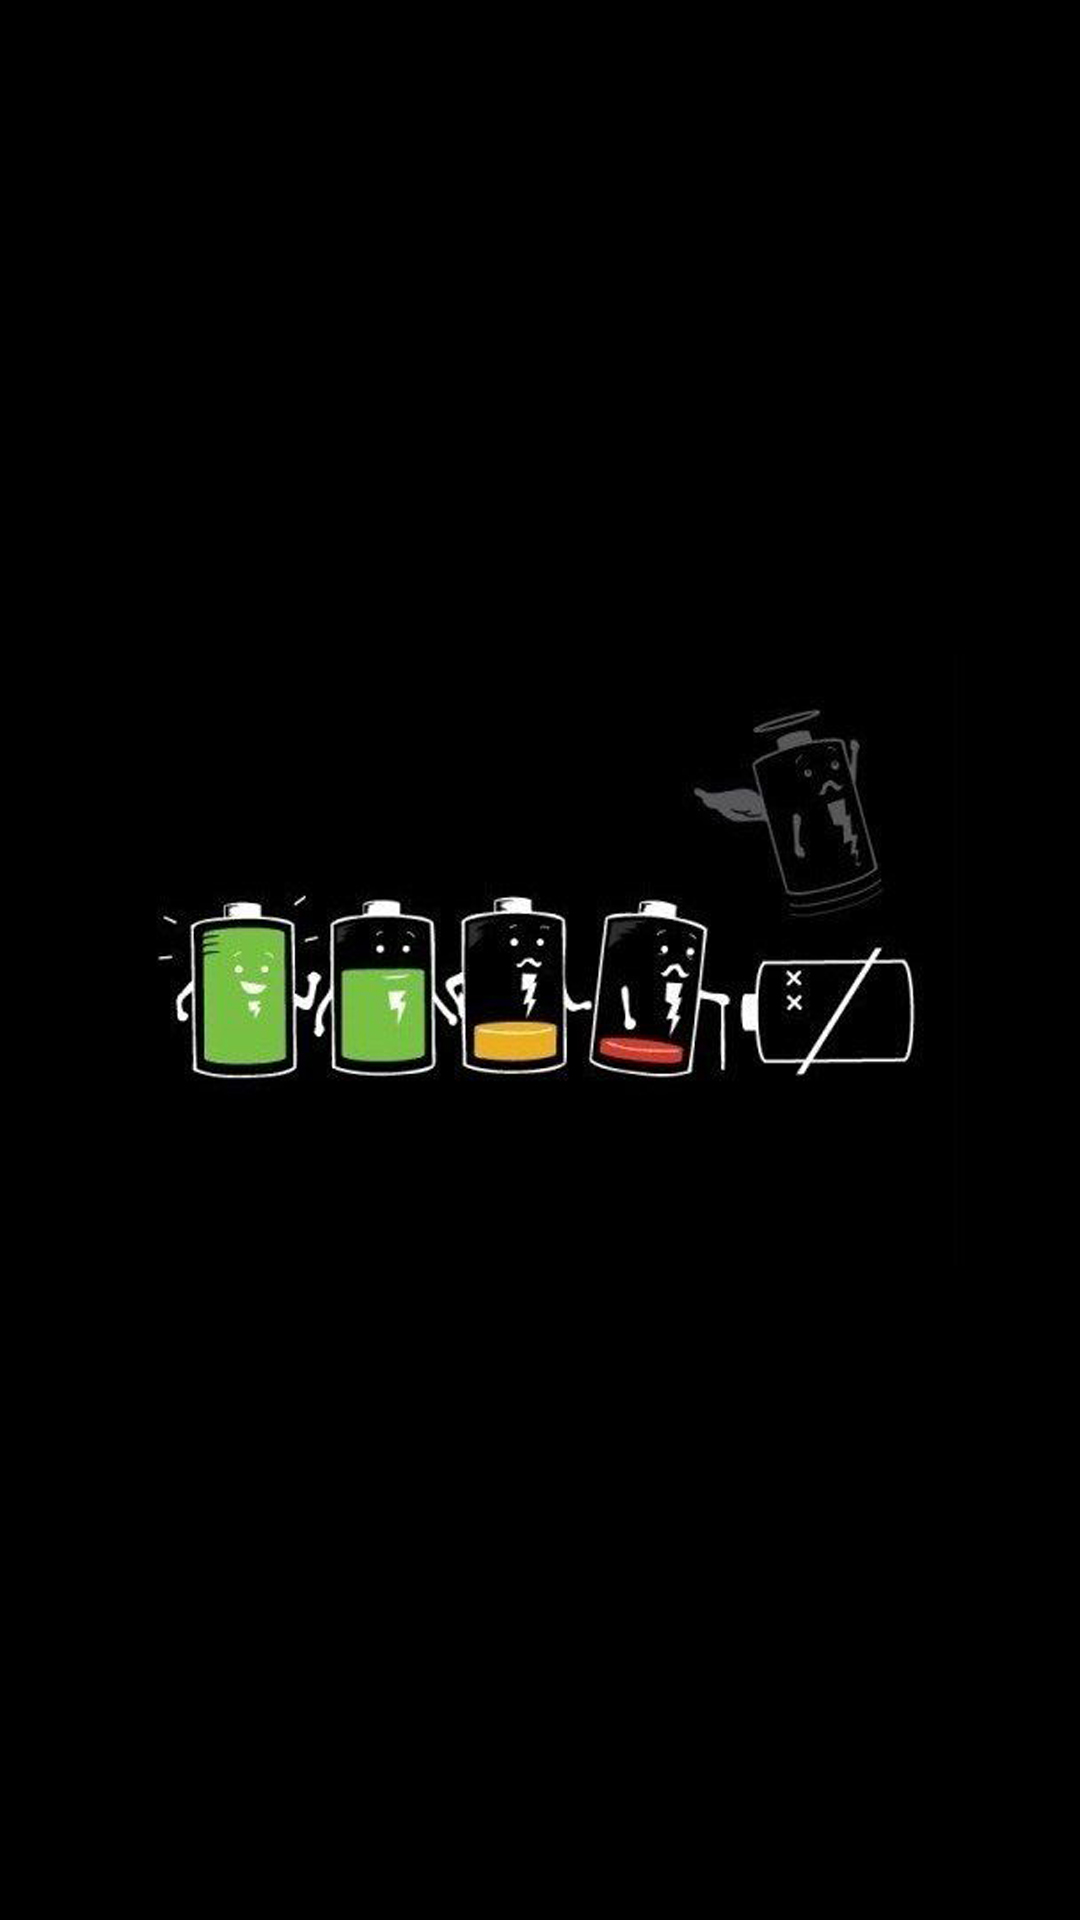 life-cycle-of-a-battery-funny-android-wallpaper